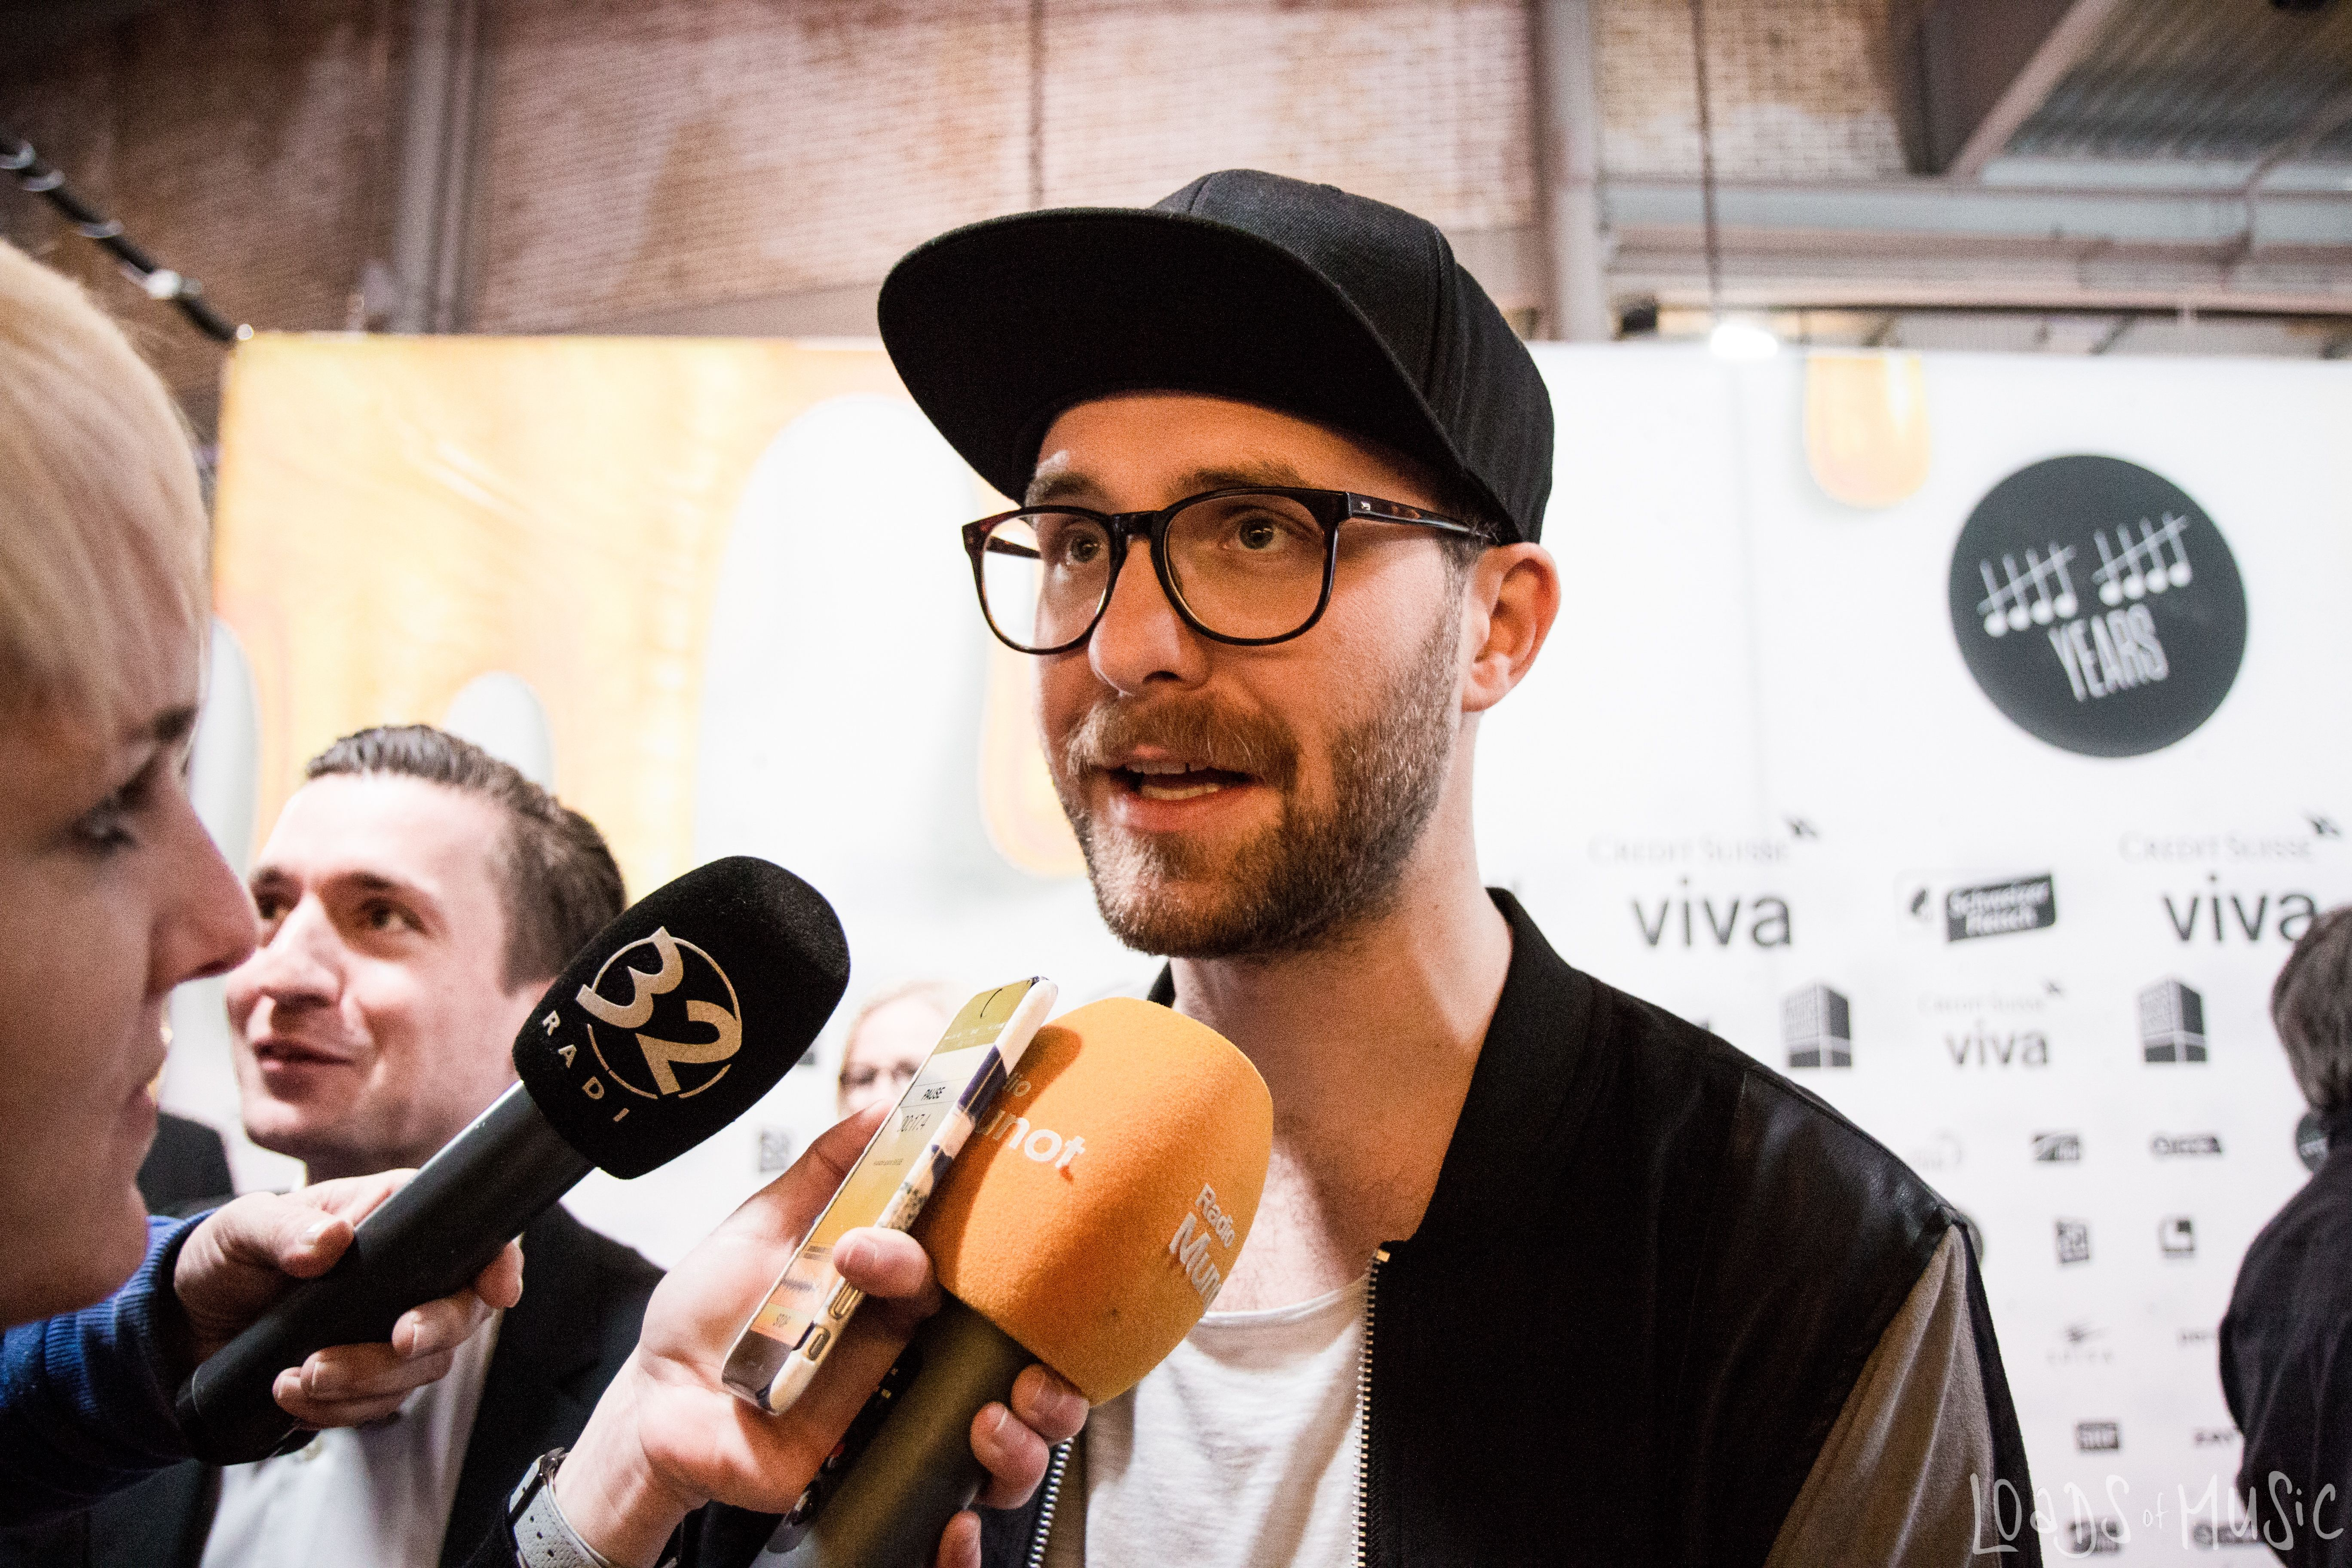 Mark Forster At Swiss Music Awards 2017 Sma17 Loads Of Music Music Awards 2017 Music Awards Concert Photography